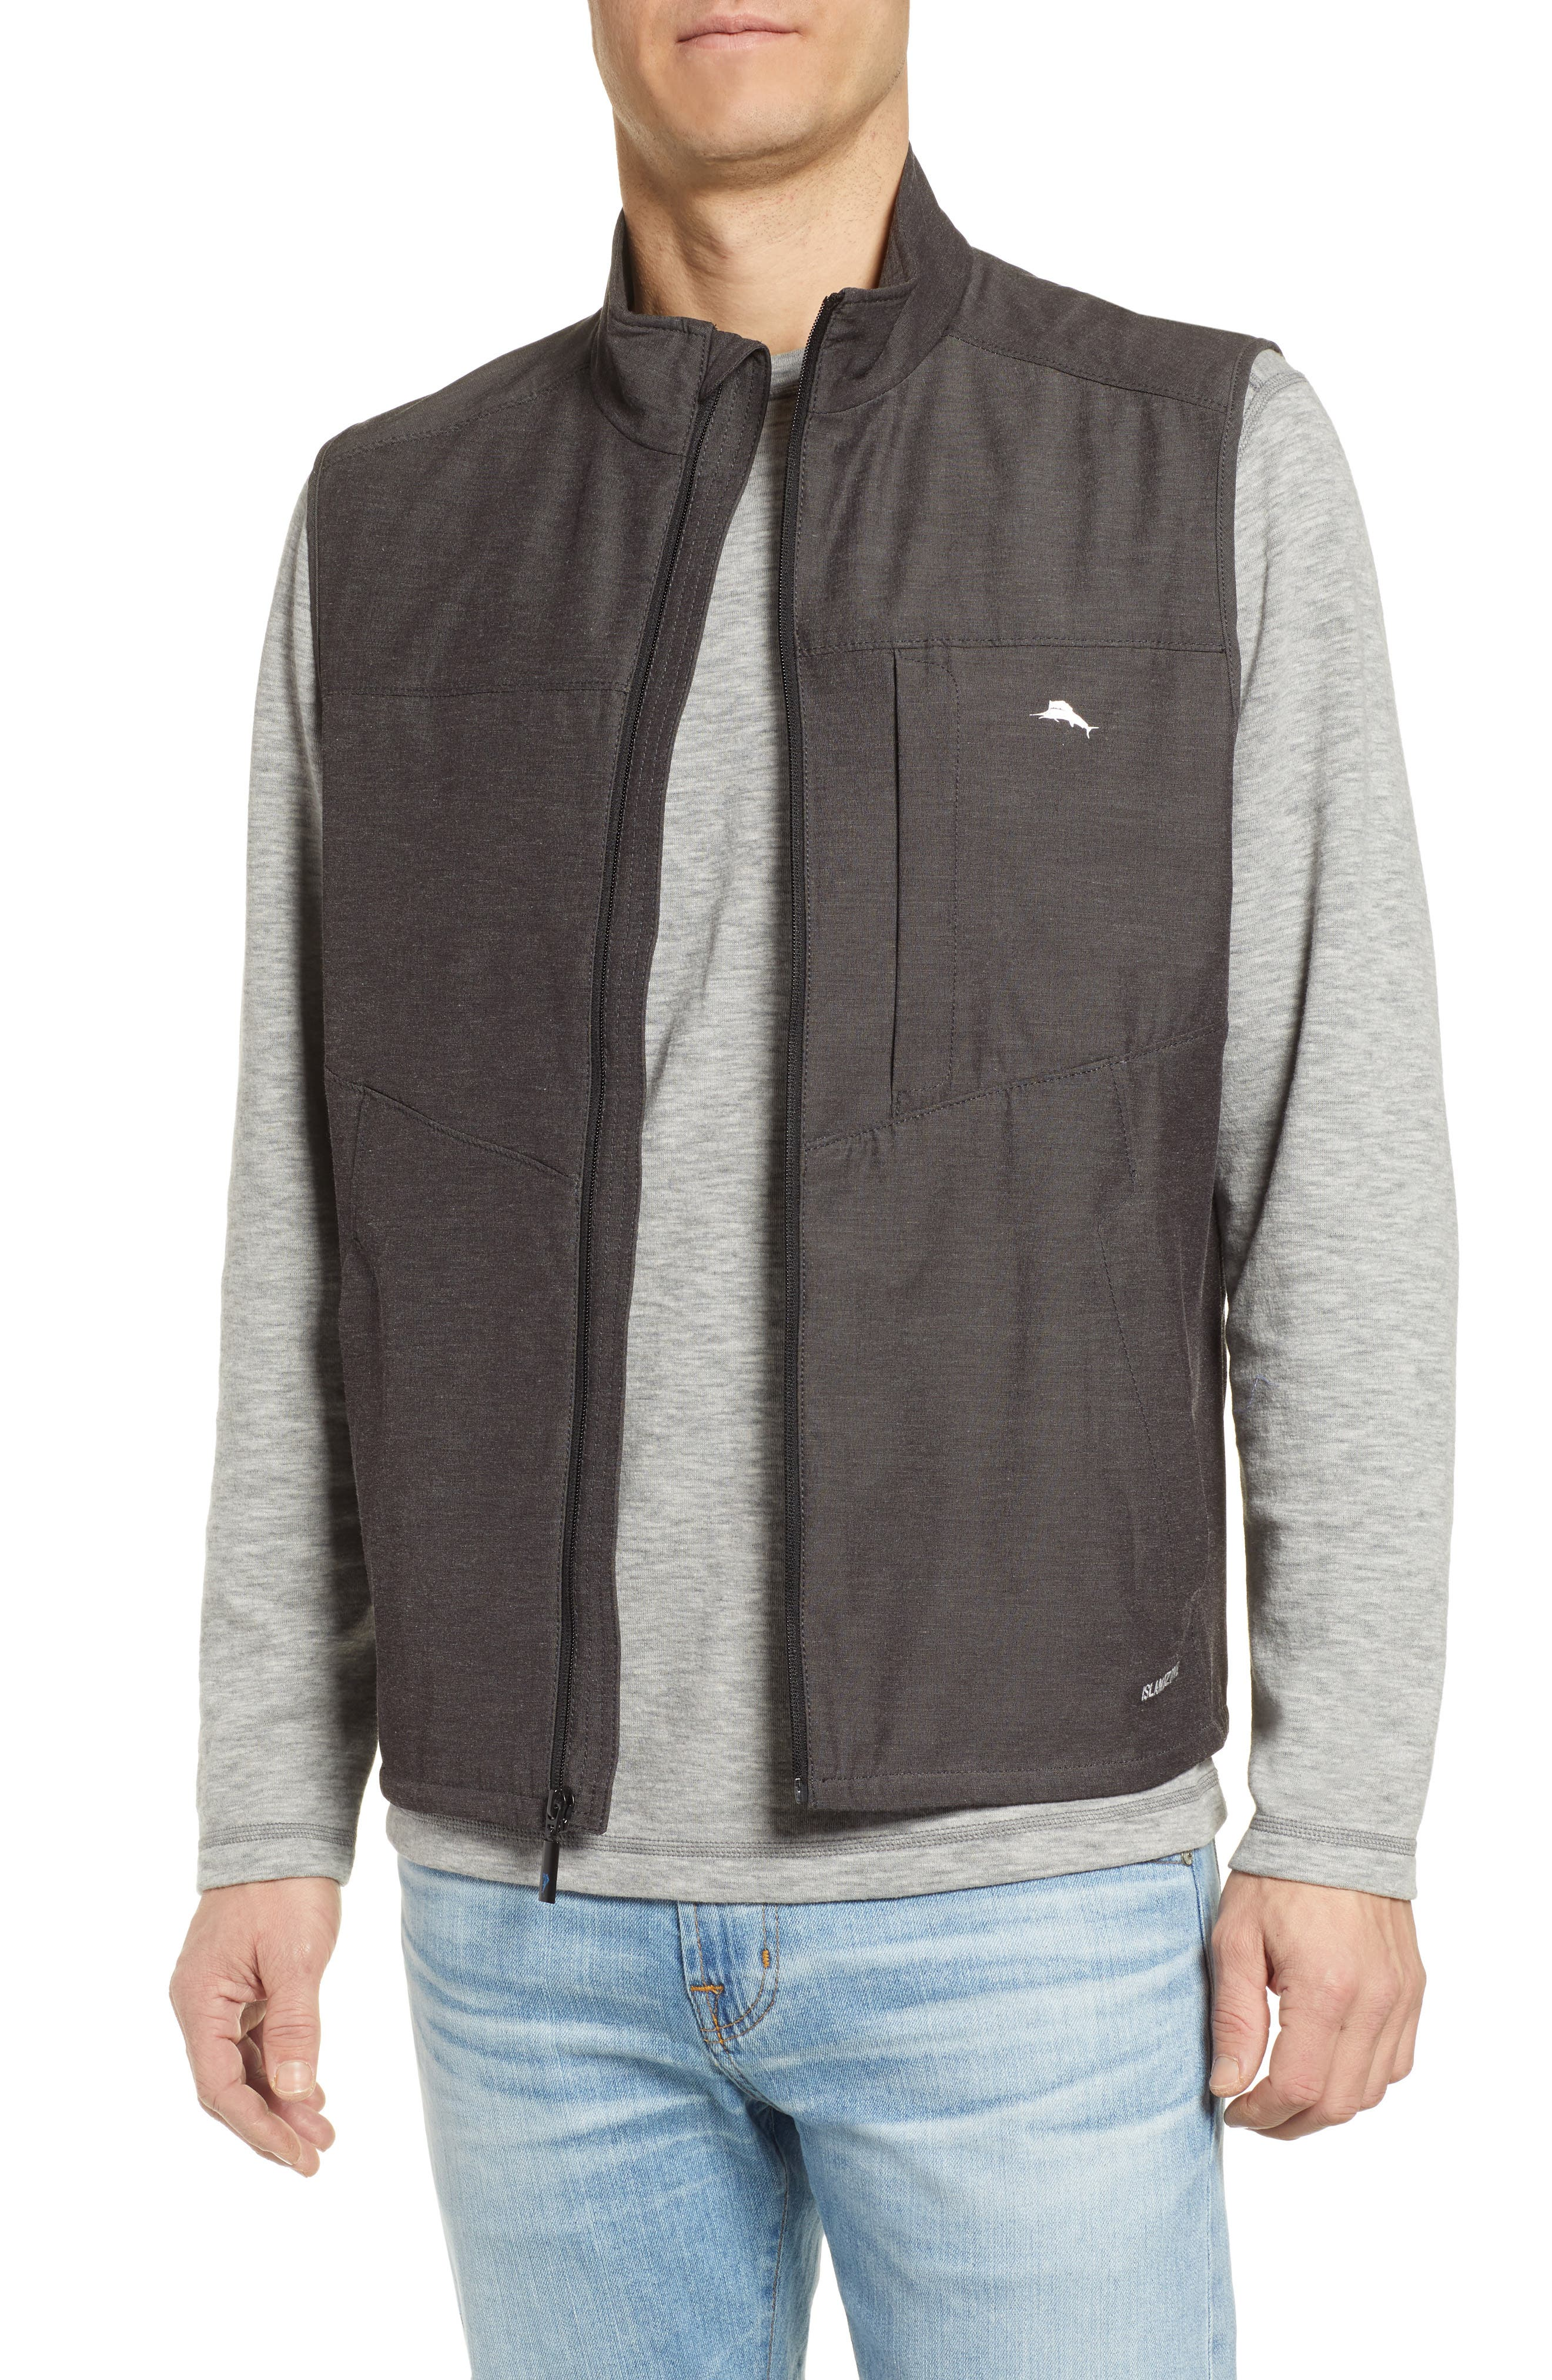 Tommy Bahama Chip And Run Vest, Grey